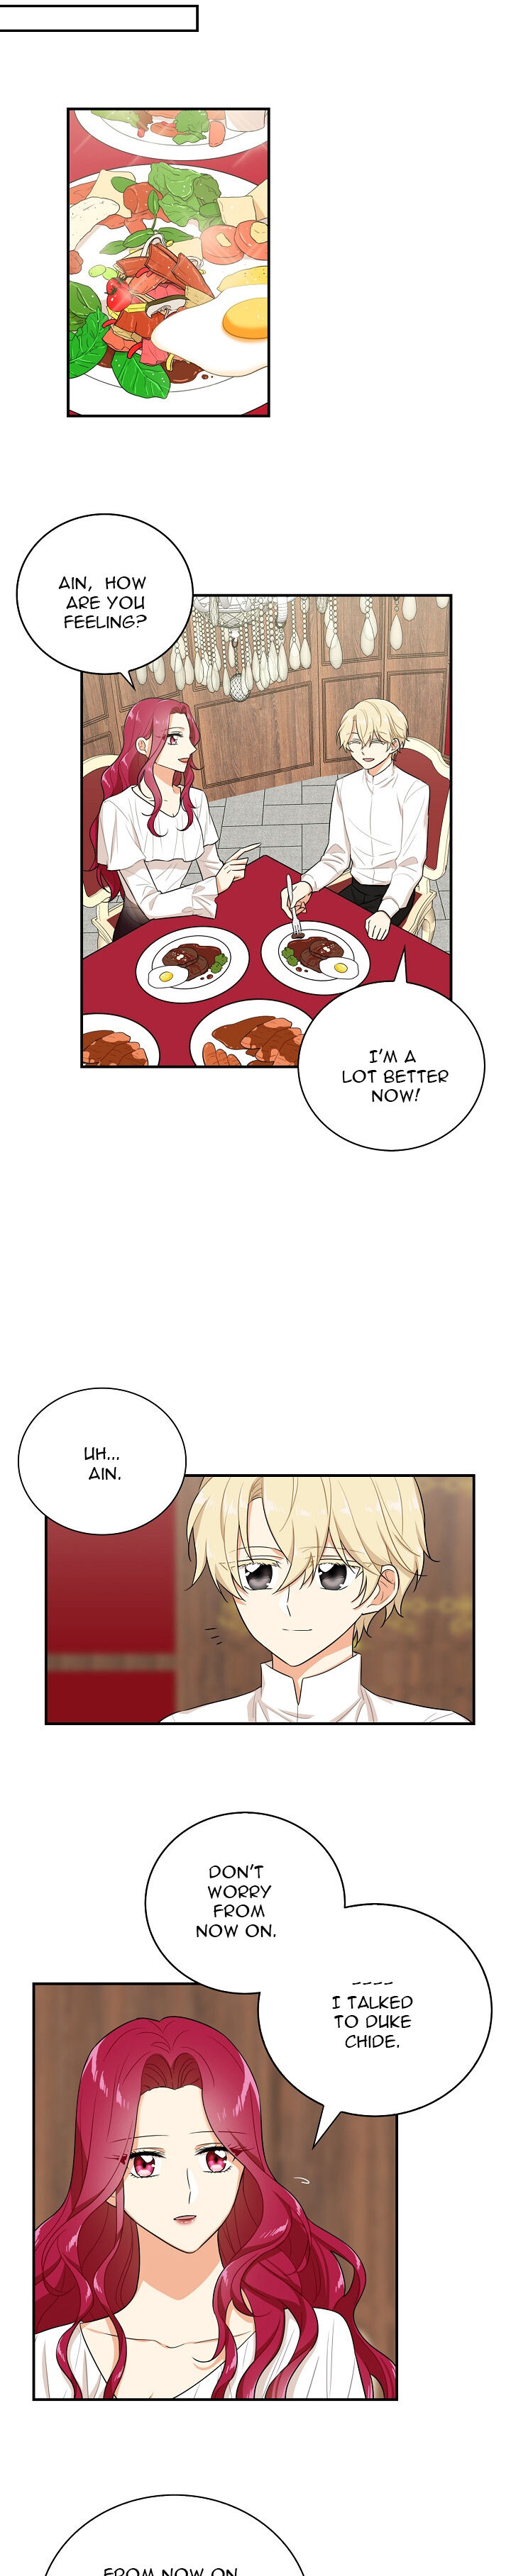 I Became the Mother of the Villain - chapter 13 - #2